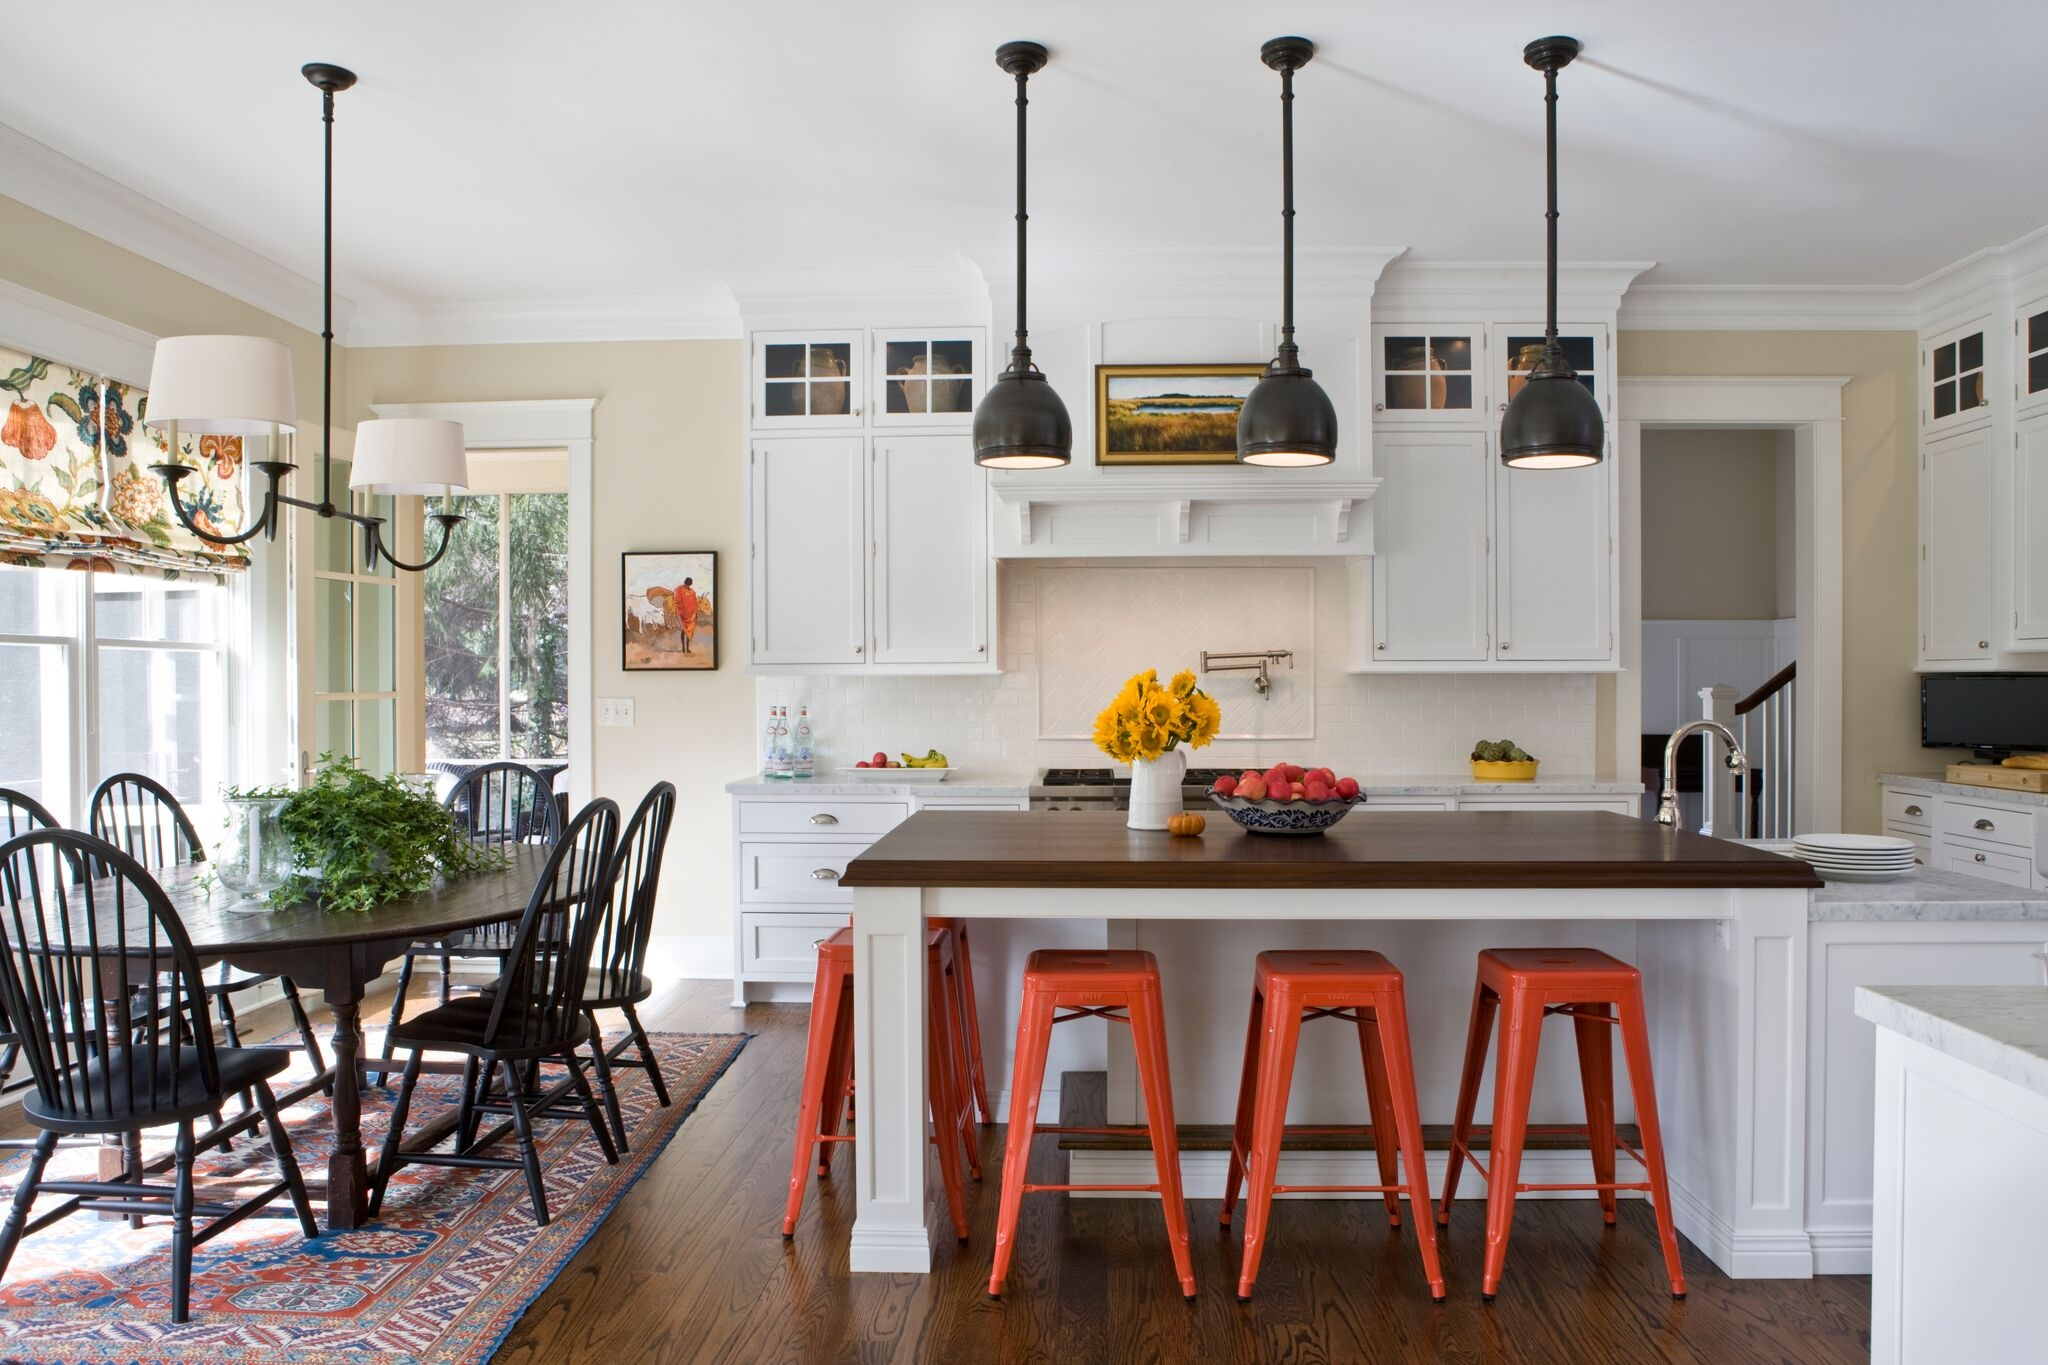 Marika-Meyer-Interior-Design-Maryland-Kitchen